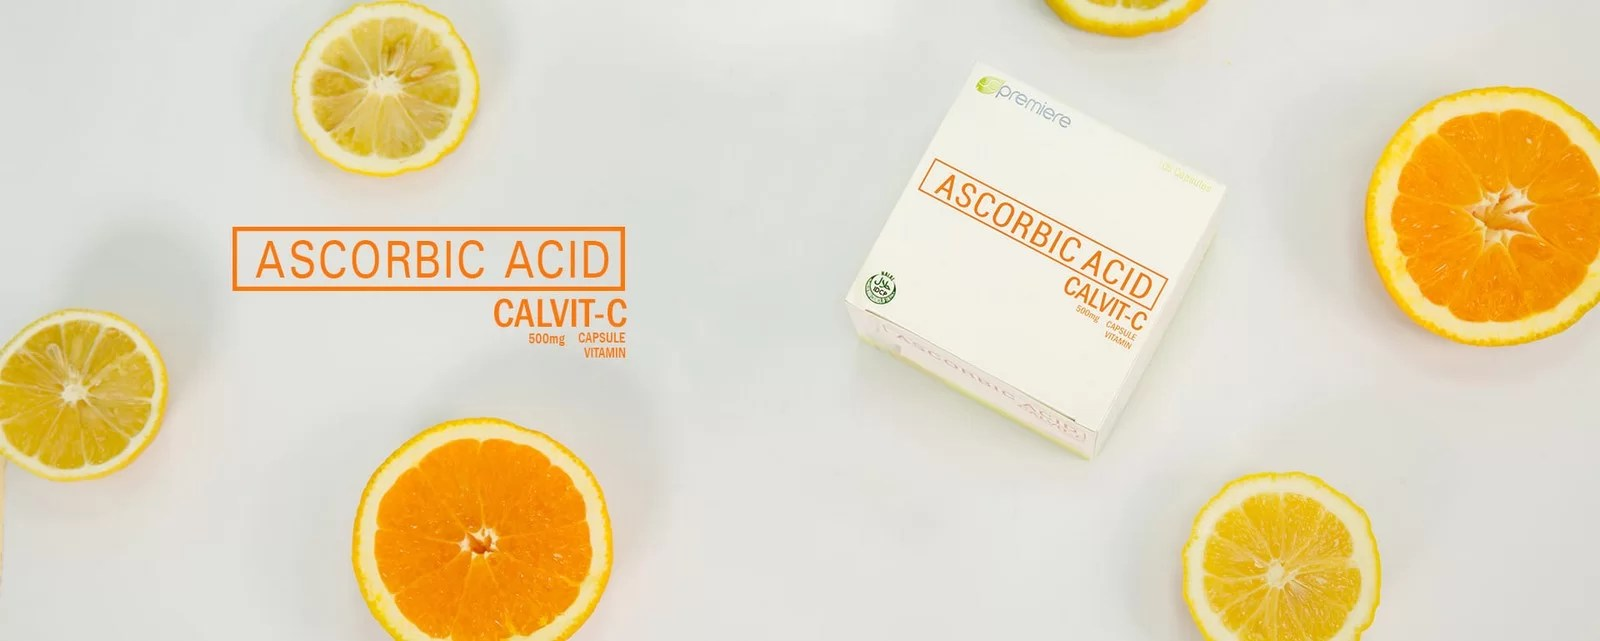 buy-Calvit-C-jc-premiere-products-online-06